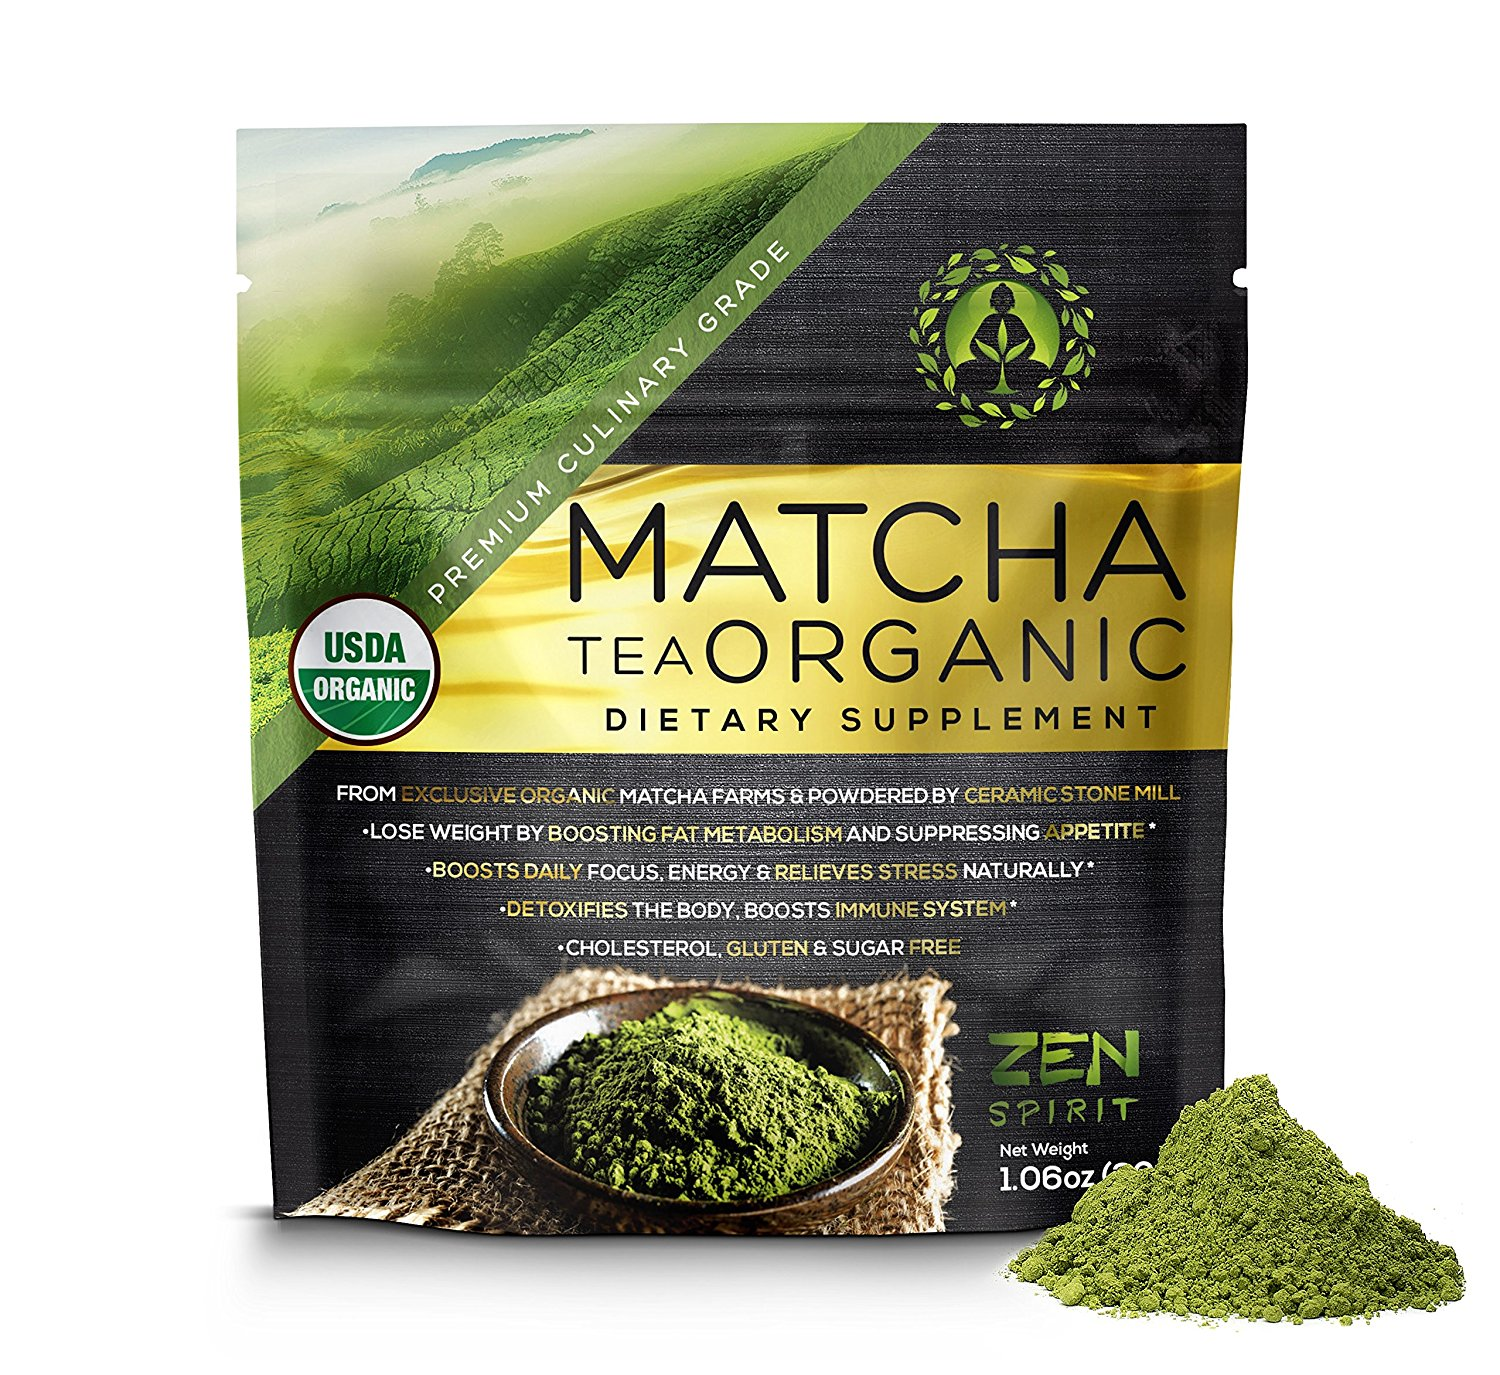 Matcha Green Tea Powder Organic ( Japanese Premium Culinary Grade ) - USDA & Vegan Certified - 30g (1.06 oz) - Perfect for Baking